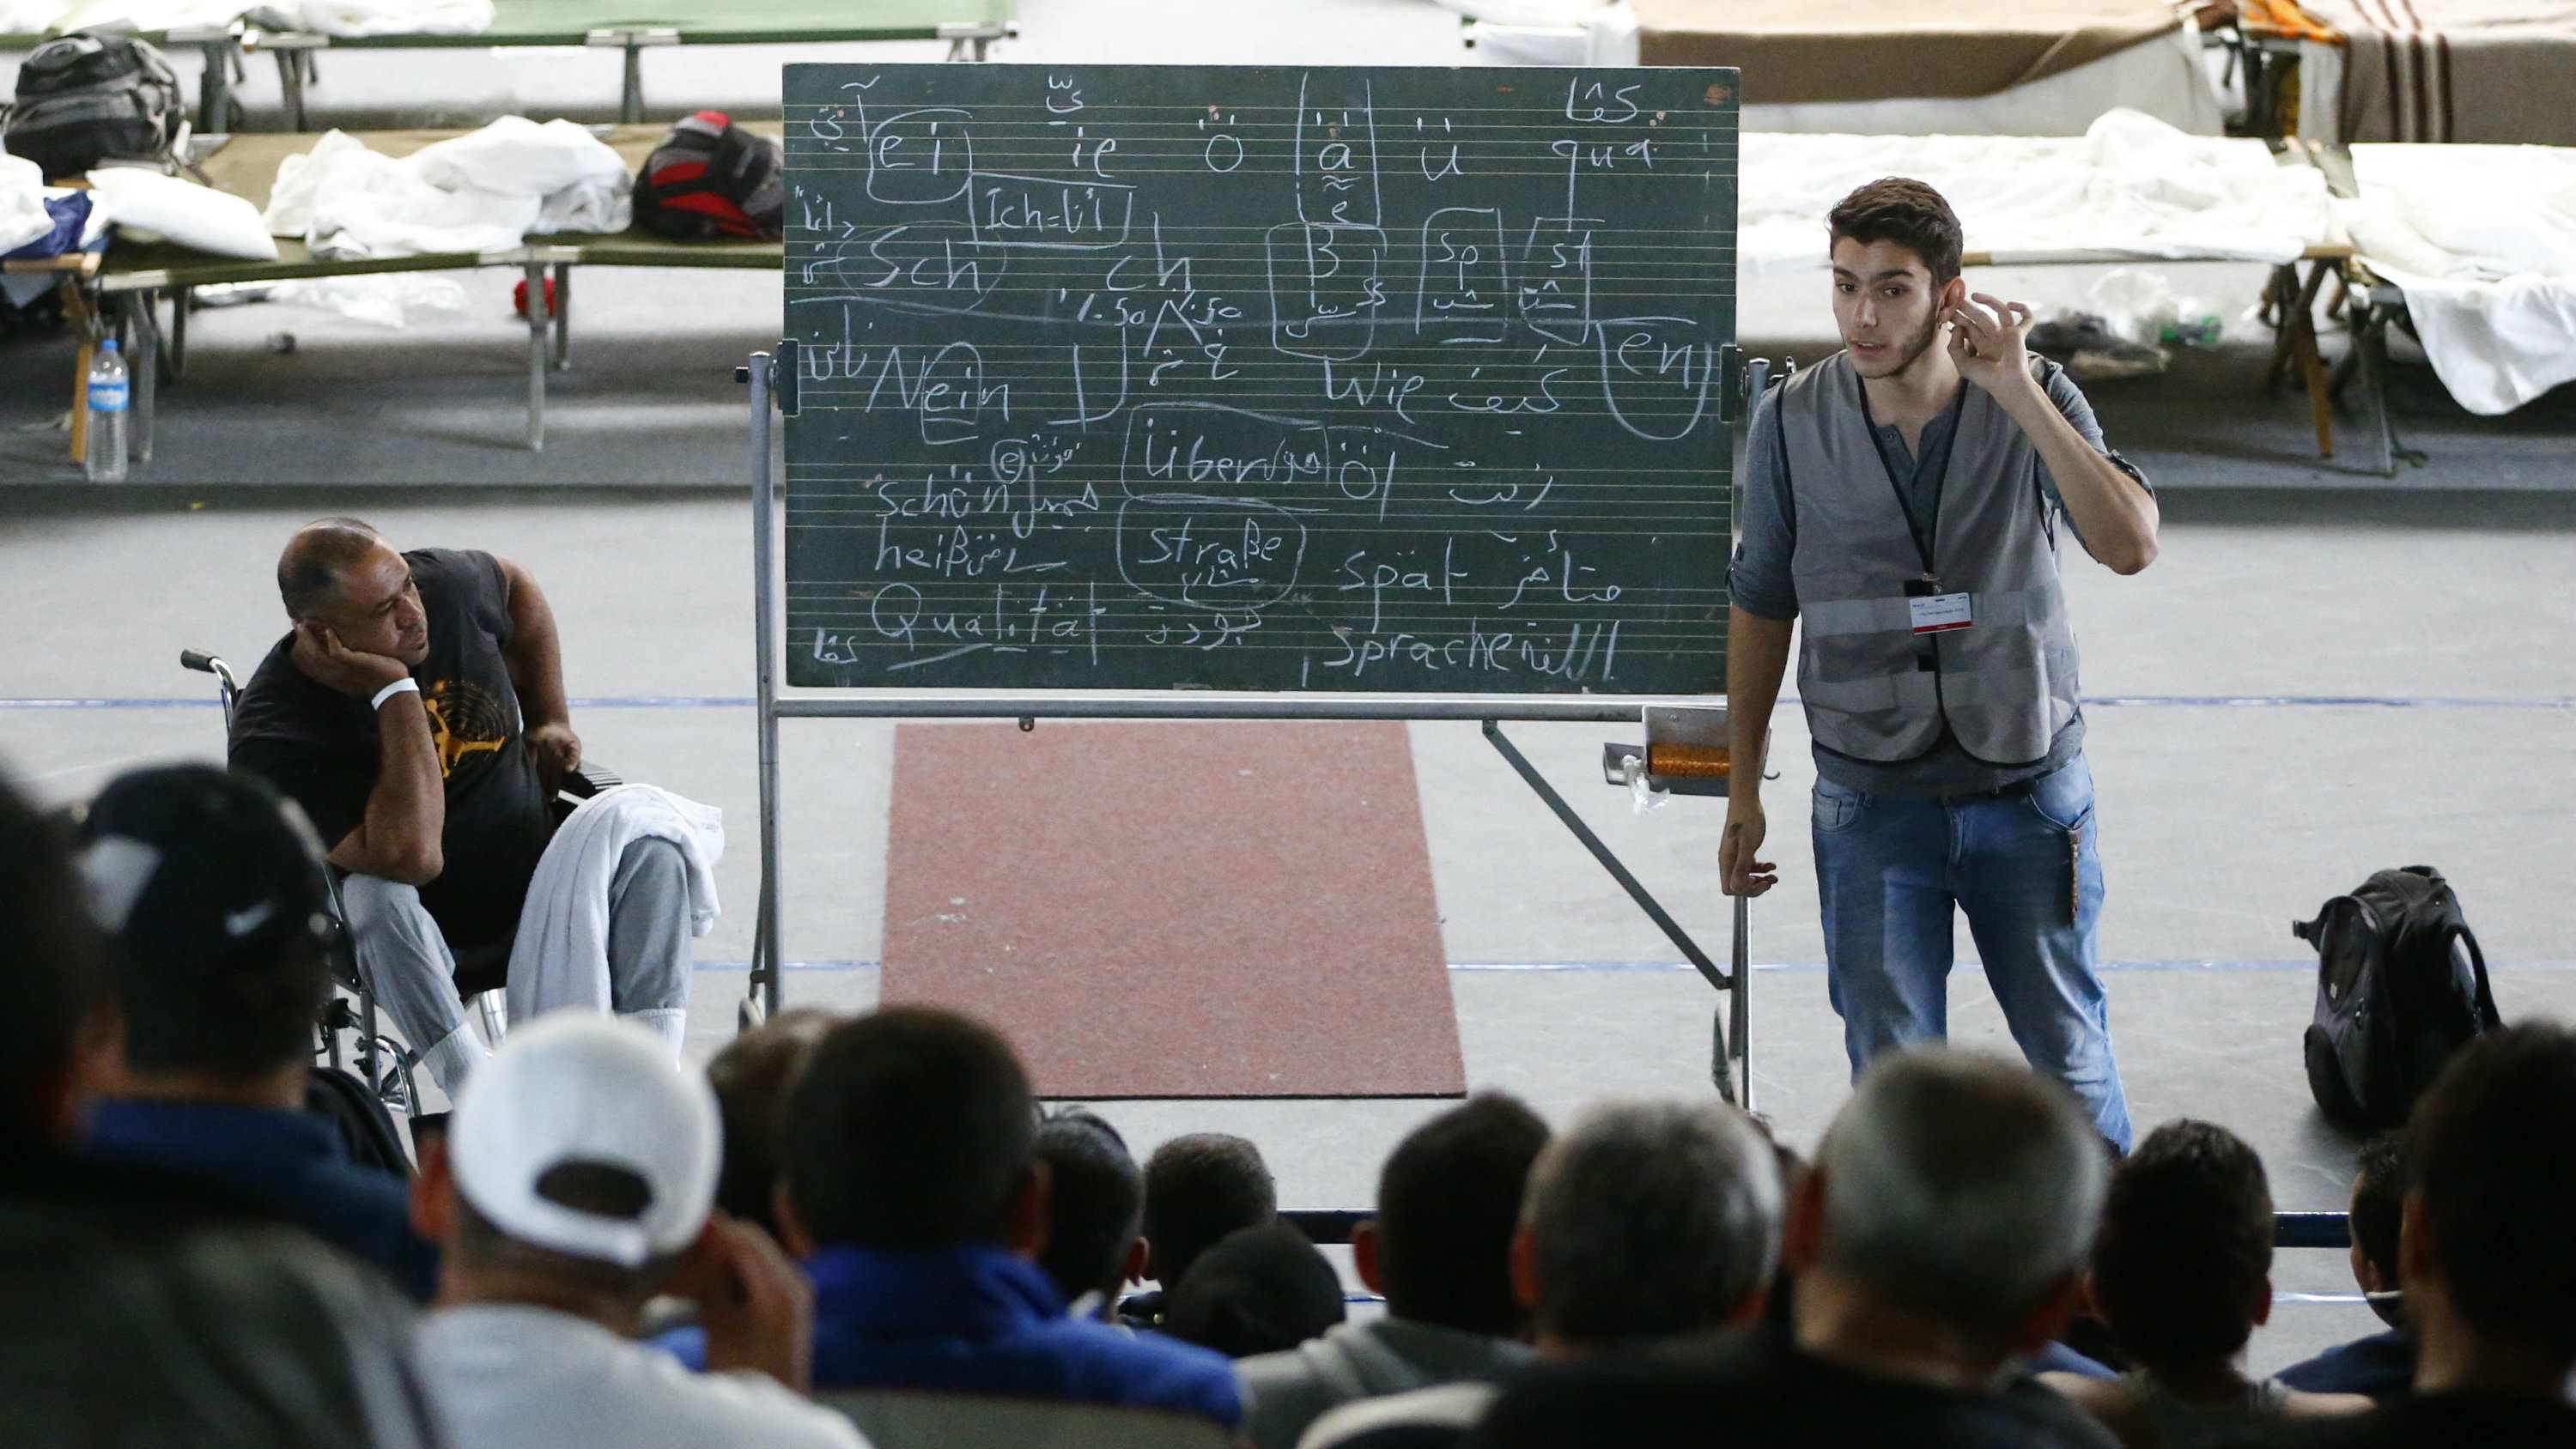 A volunteer conducts German language lessons for migrants inside an improvised shelter at a sports hall in Hanau, Germany, September 24, 2015.